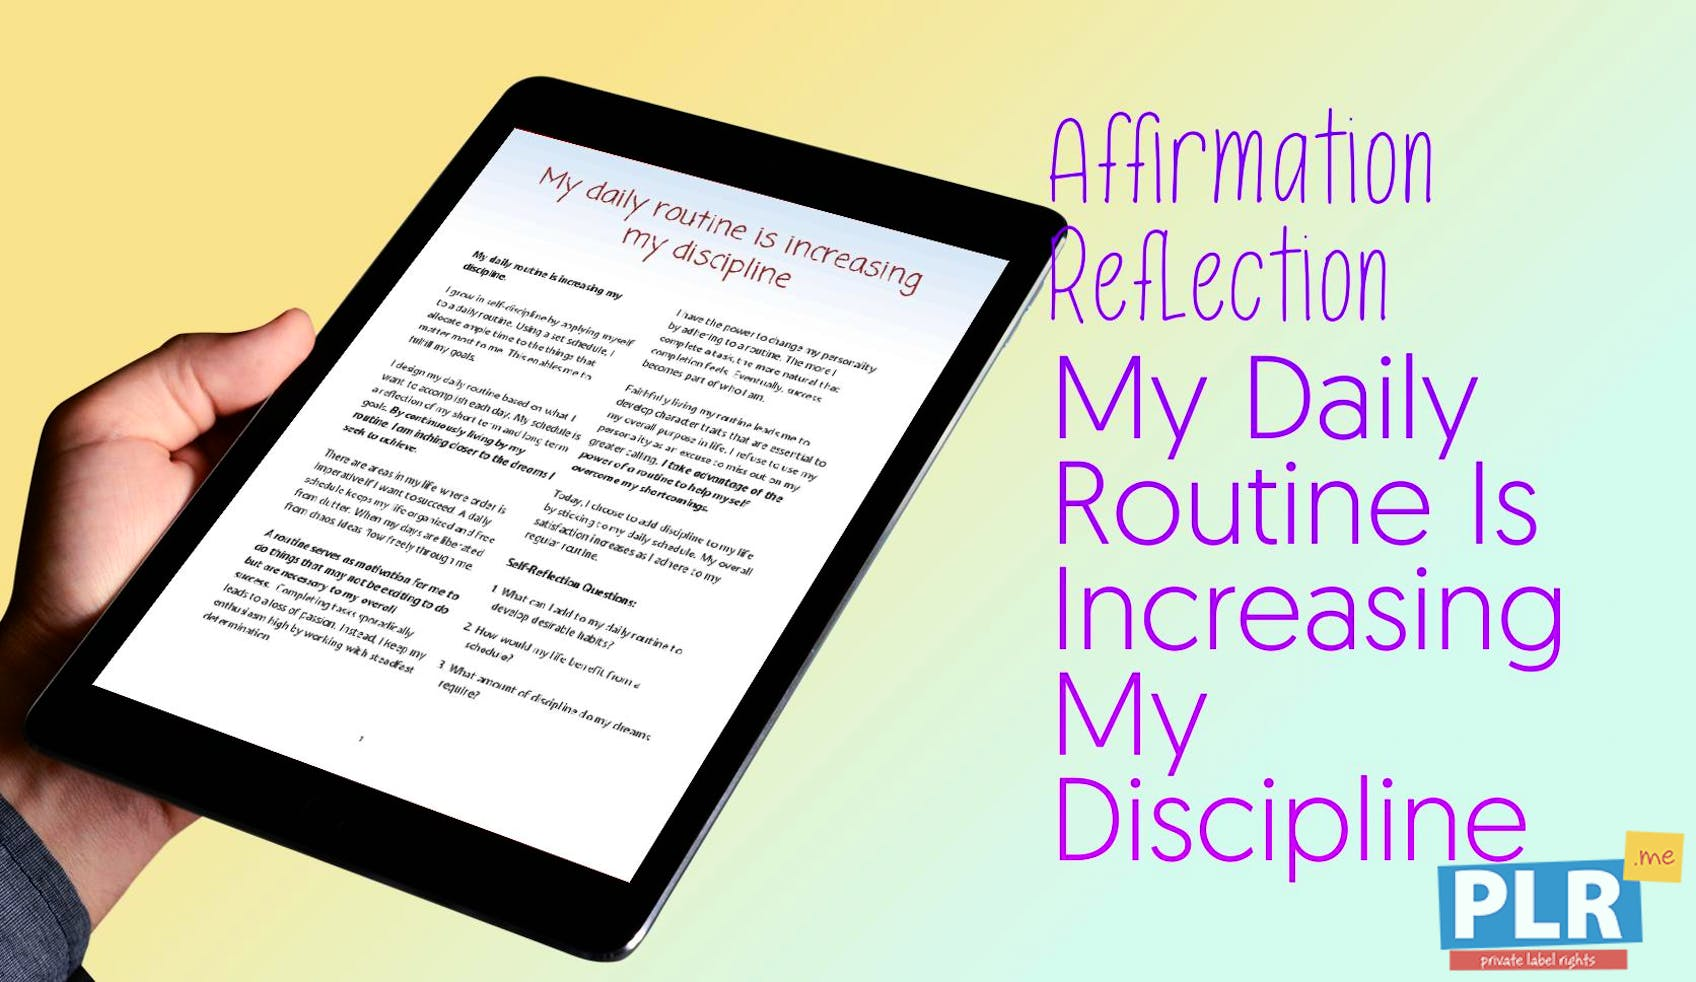 My Daily Routine Is Increasing My Discipline